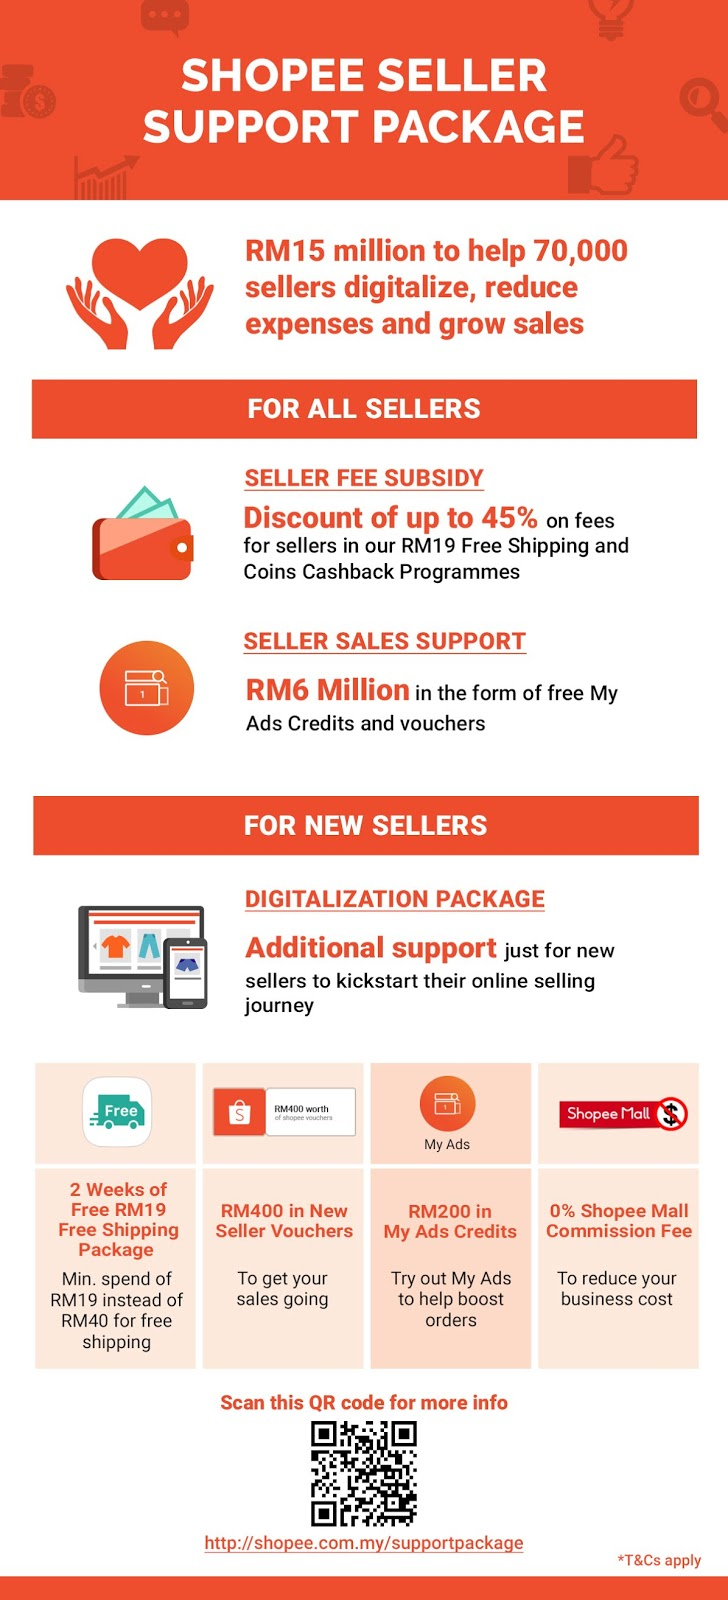 Shopee Seller Support Package